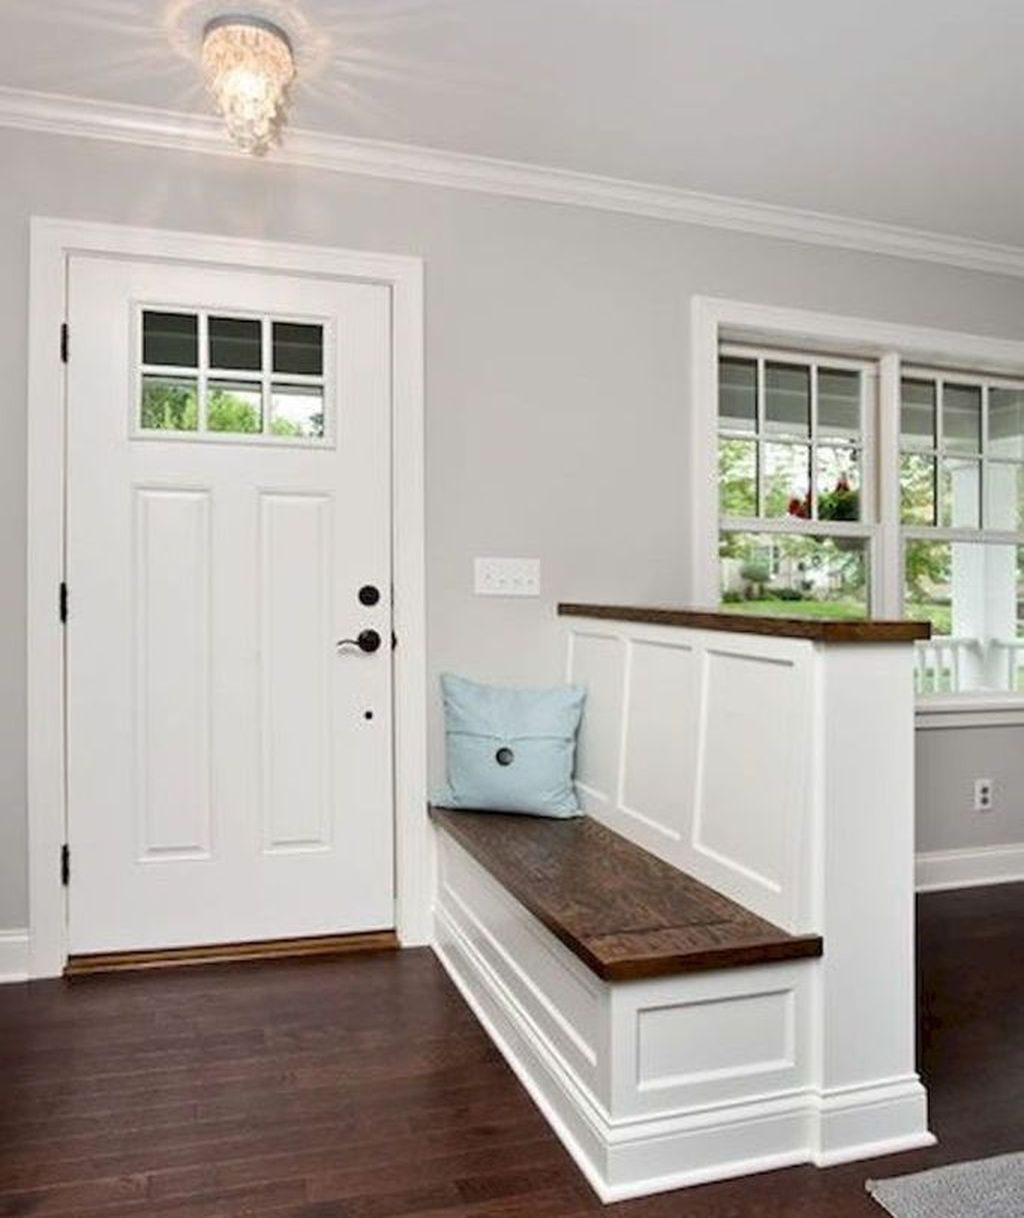 Splendid Entryway Home Décor Ideas That Make Your Place Look Cool 14